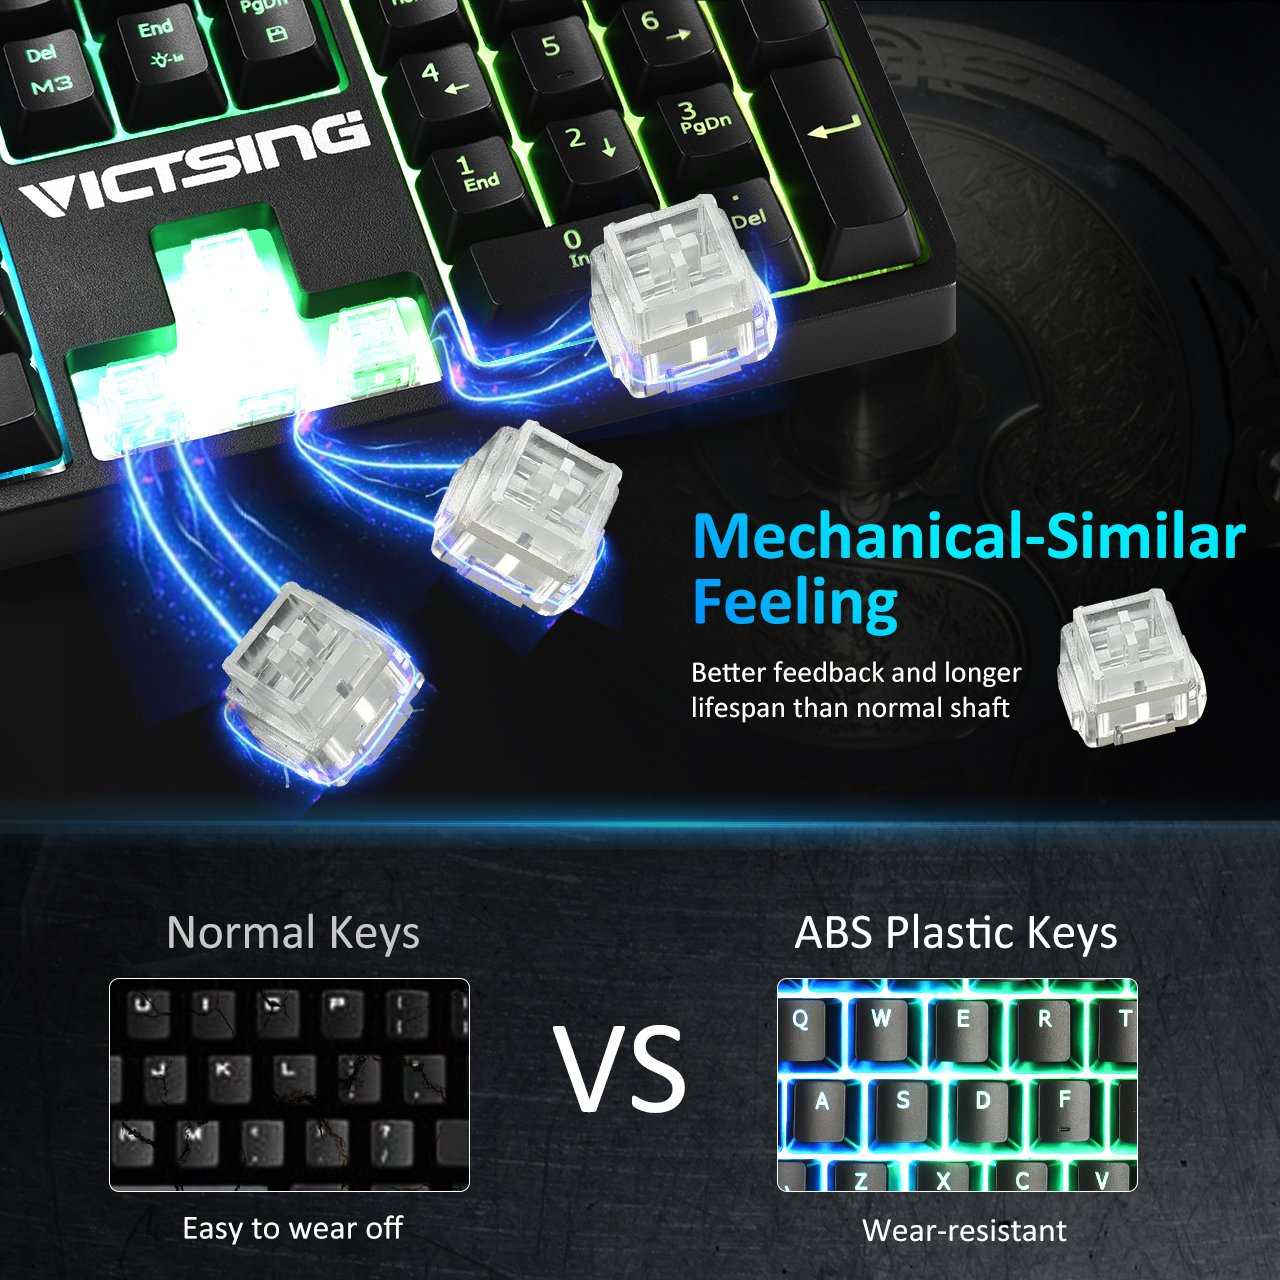 Gaming Keyboard, (Mechanical Feeling, 7 Color RGB Backlit, 12 Multimedia  Keys) VicTsing® Durable Wired LED Backlight Keyboard Waterproof with